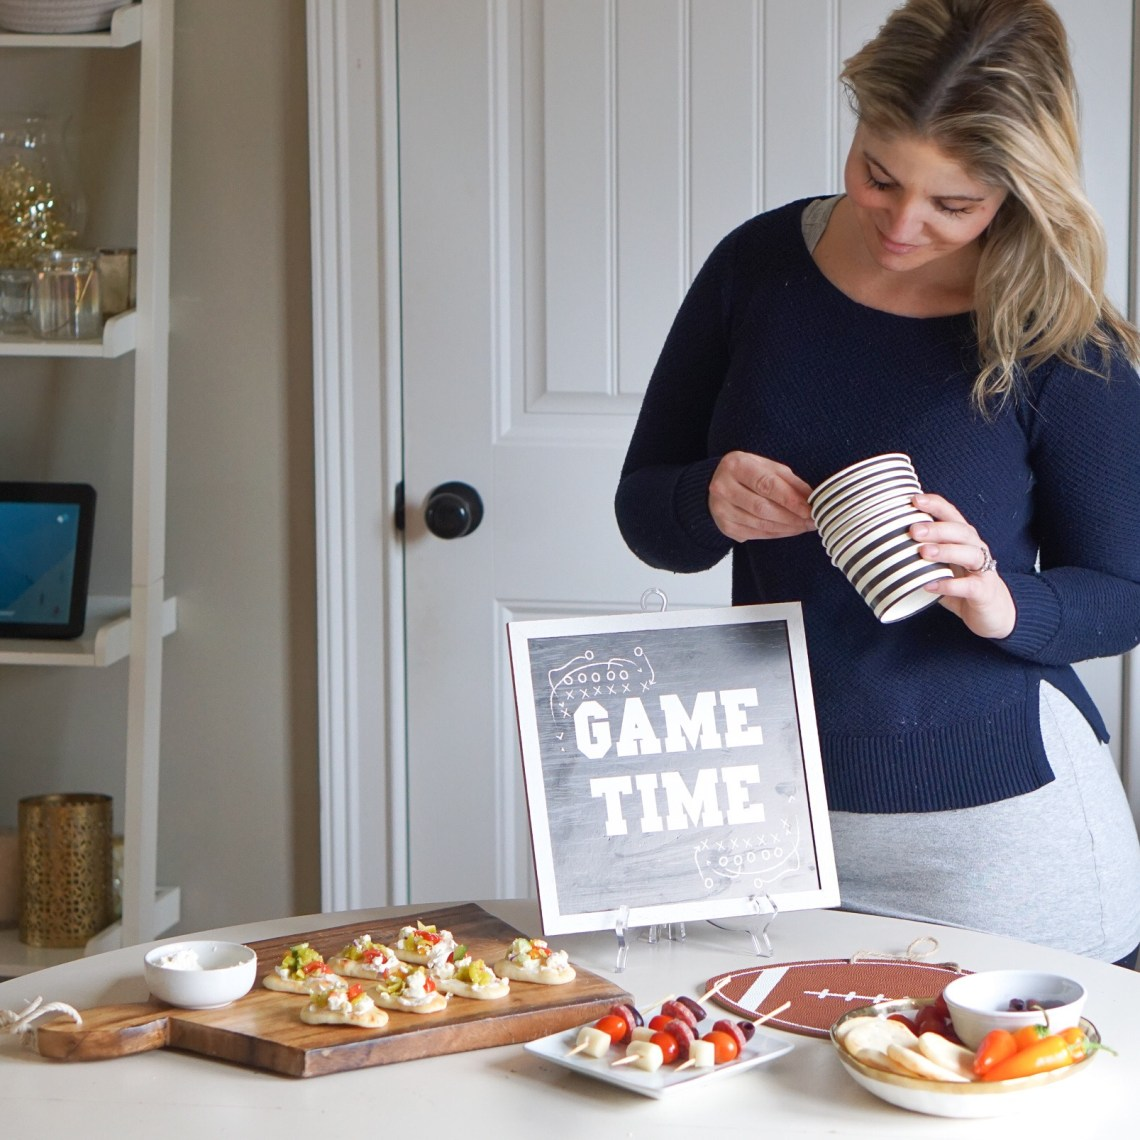 Party Snack Food in Fifteen Minutes - Game Day Grub and Football Party Ideas via Frosted Blog